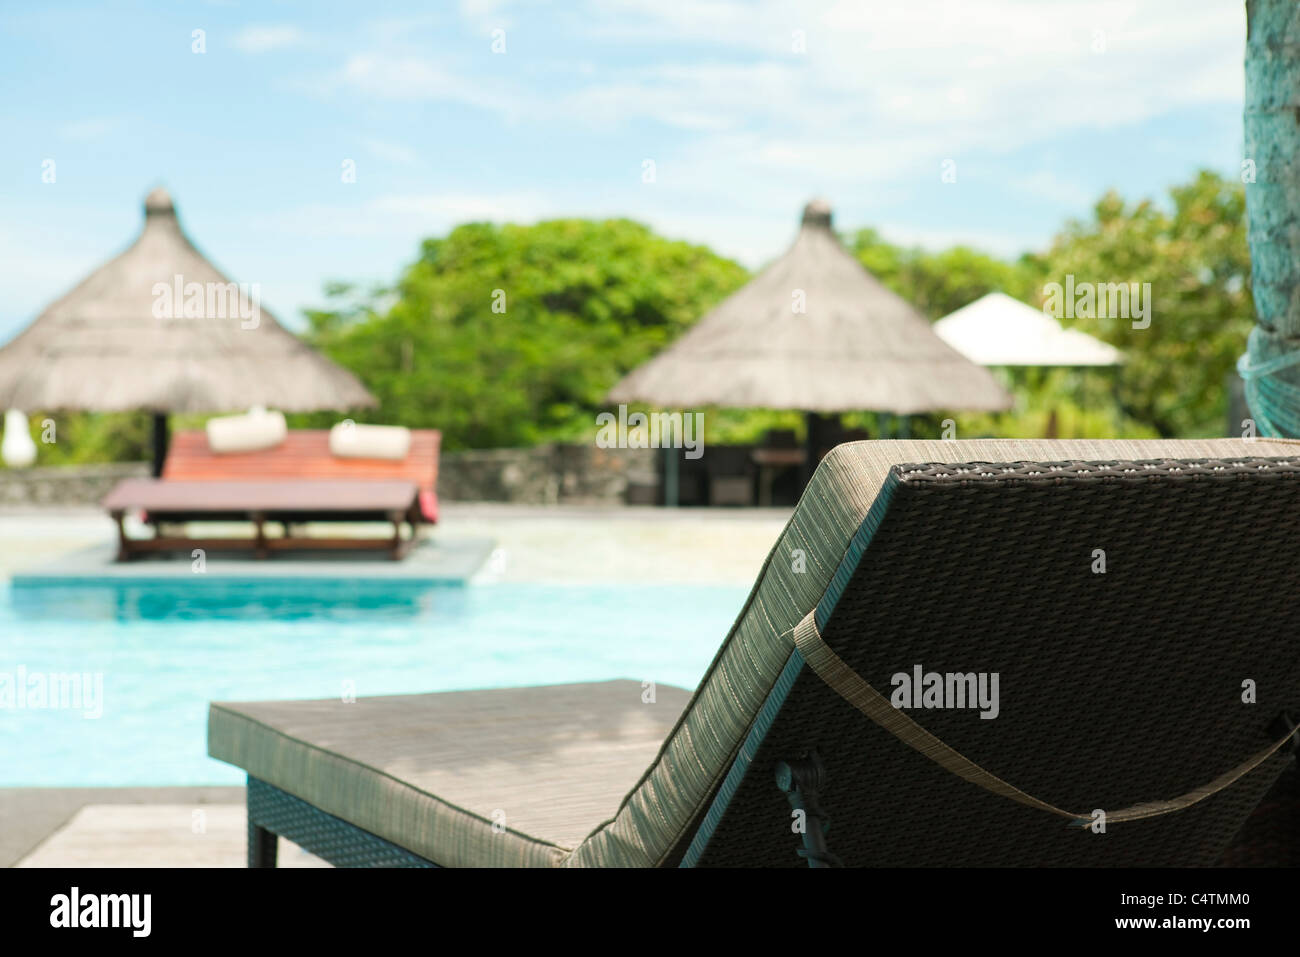 Lounge chair beside pool at resort - Stock Image